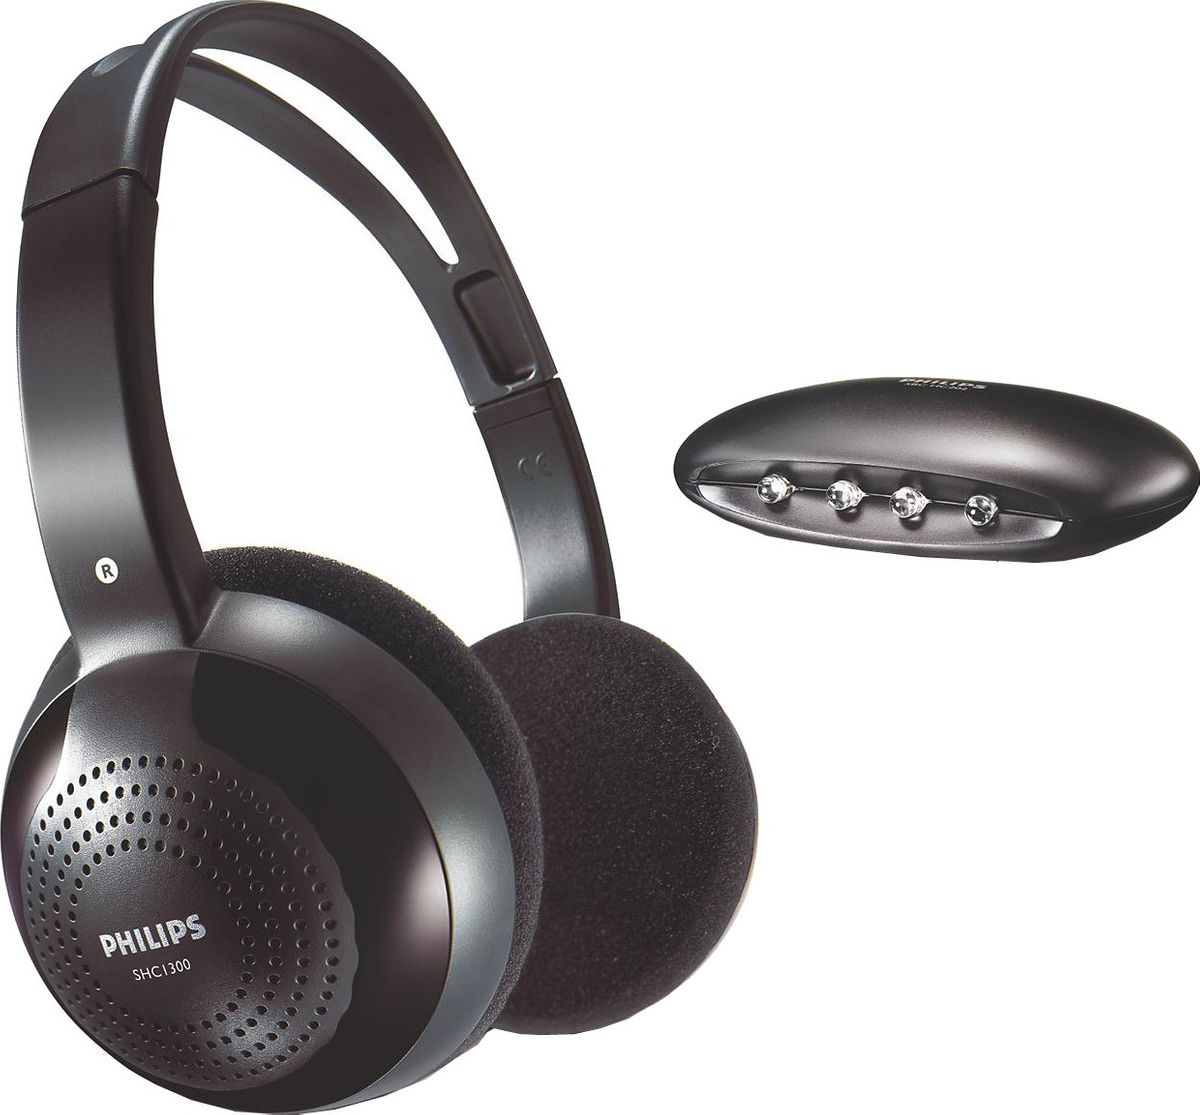 01485b69d94 Philips SHC1300 Wireless Headphones (Over the Head) Best Price in India  2019, Specs & Review | Smartprix